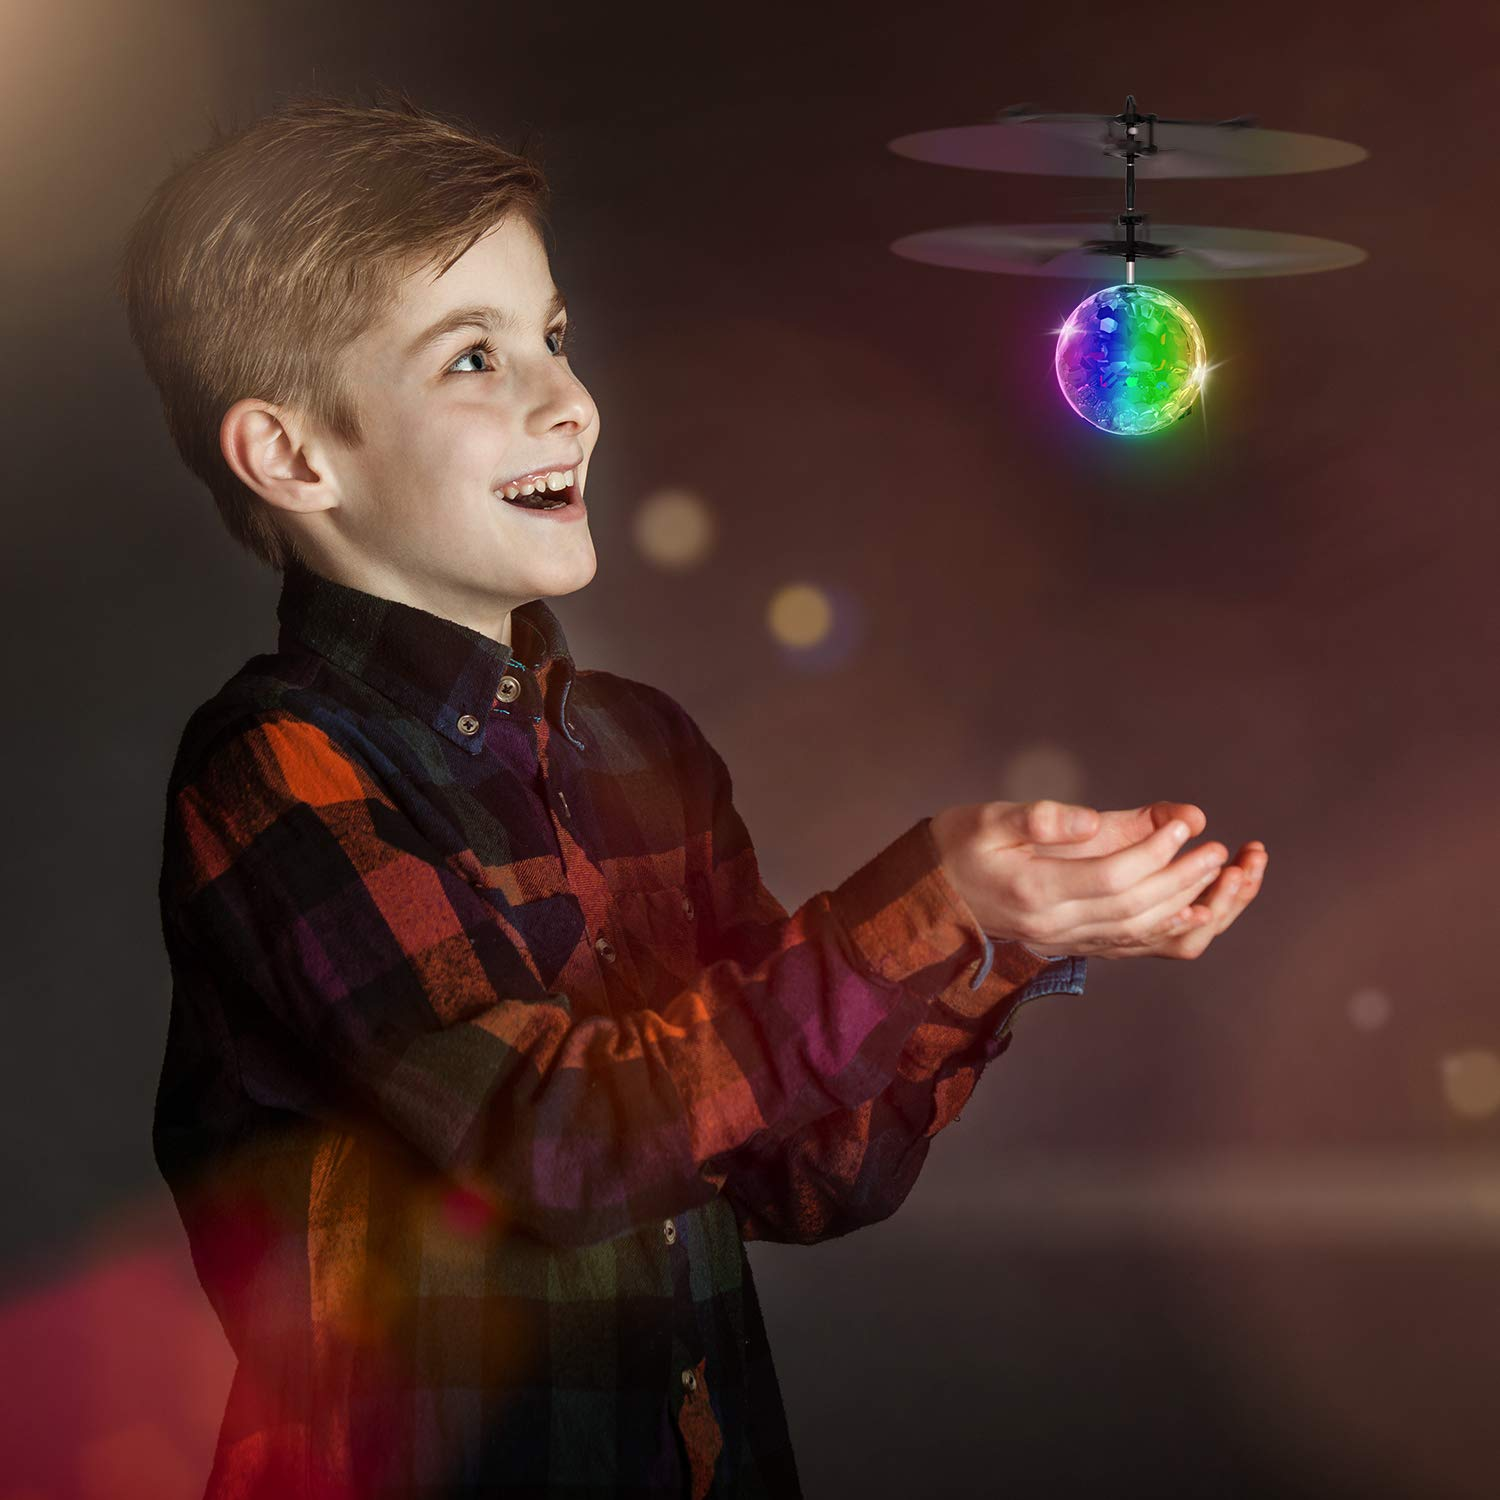 [🔥Hot Sale-50% Off Last Day]-Infrared Induction Flying Toy Ball